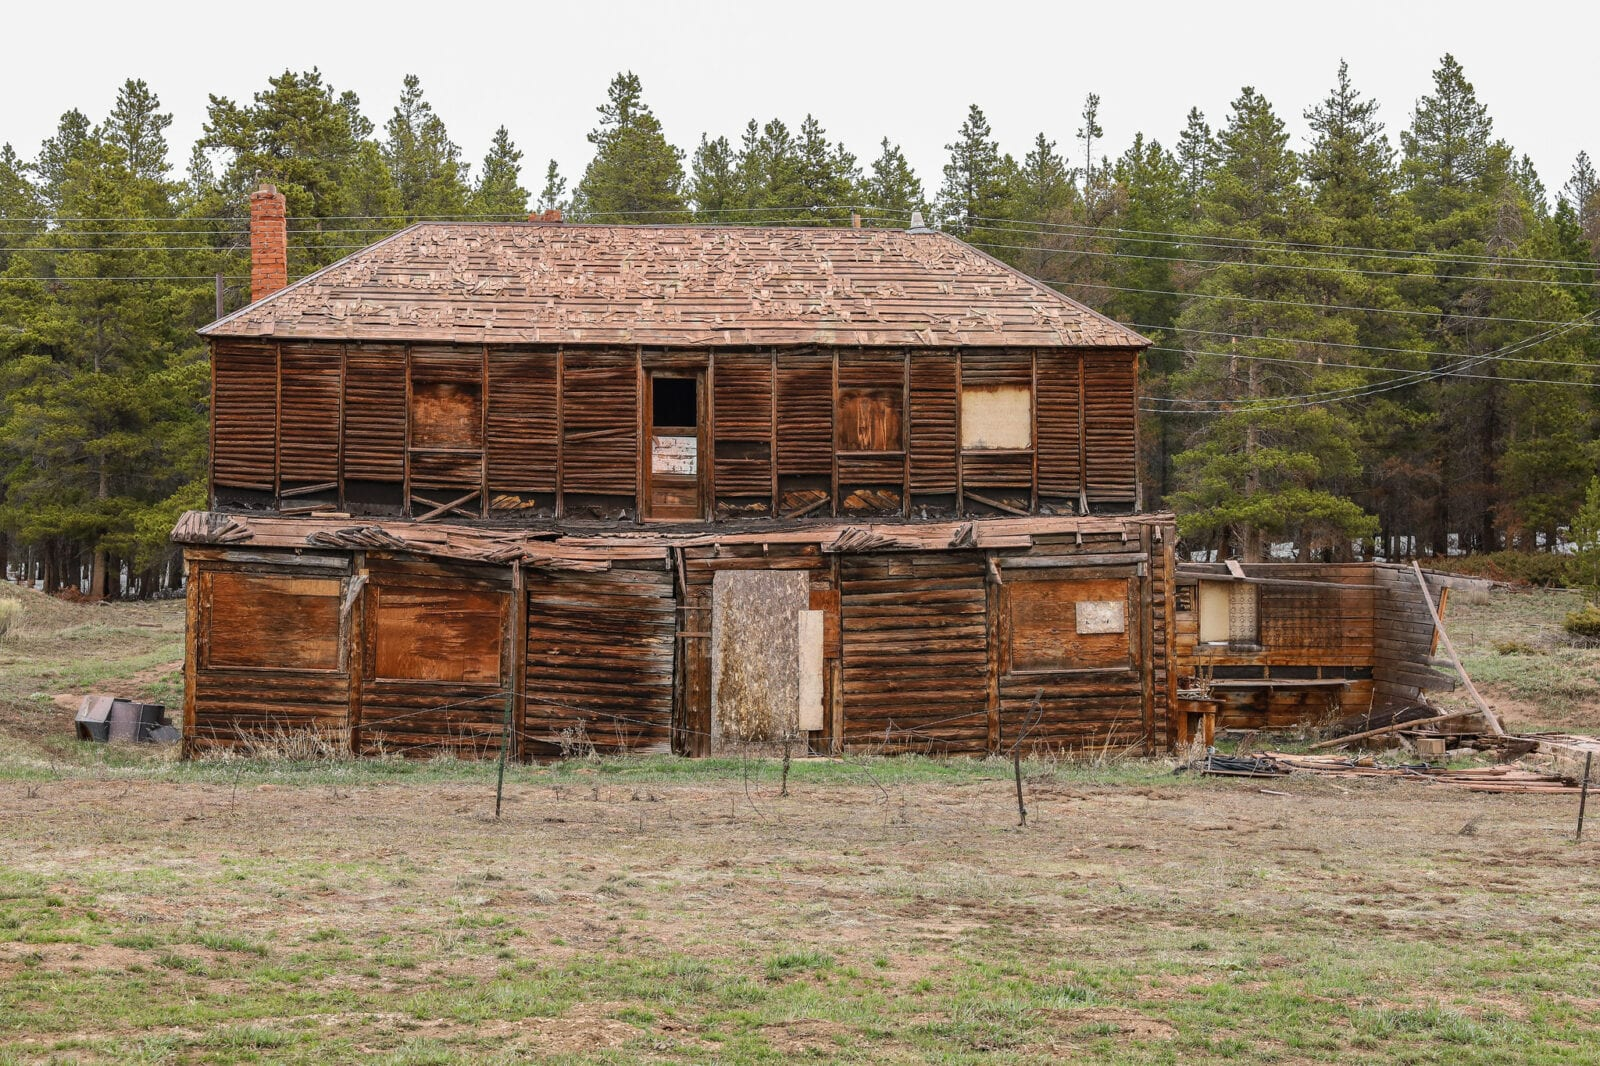 Image of a wood building at the Uptop ghost town in Colorado